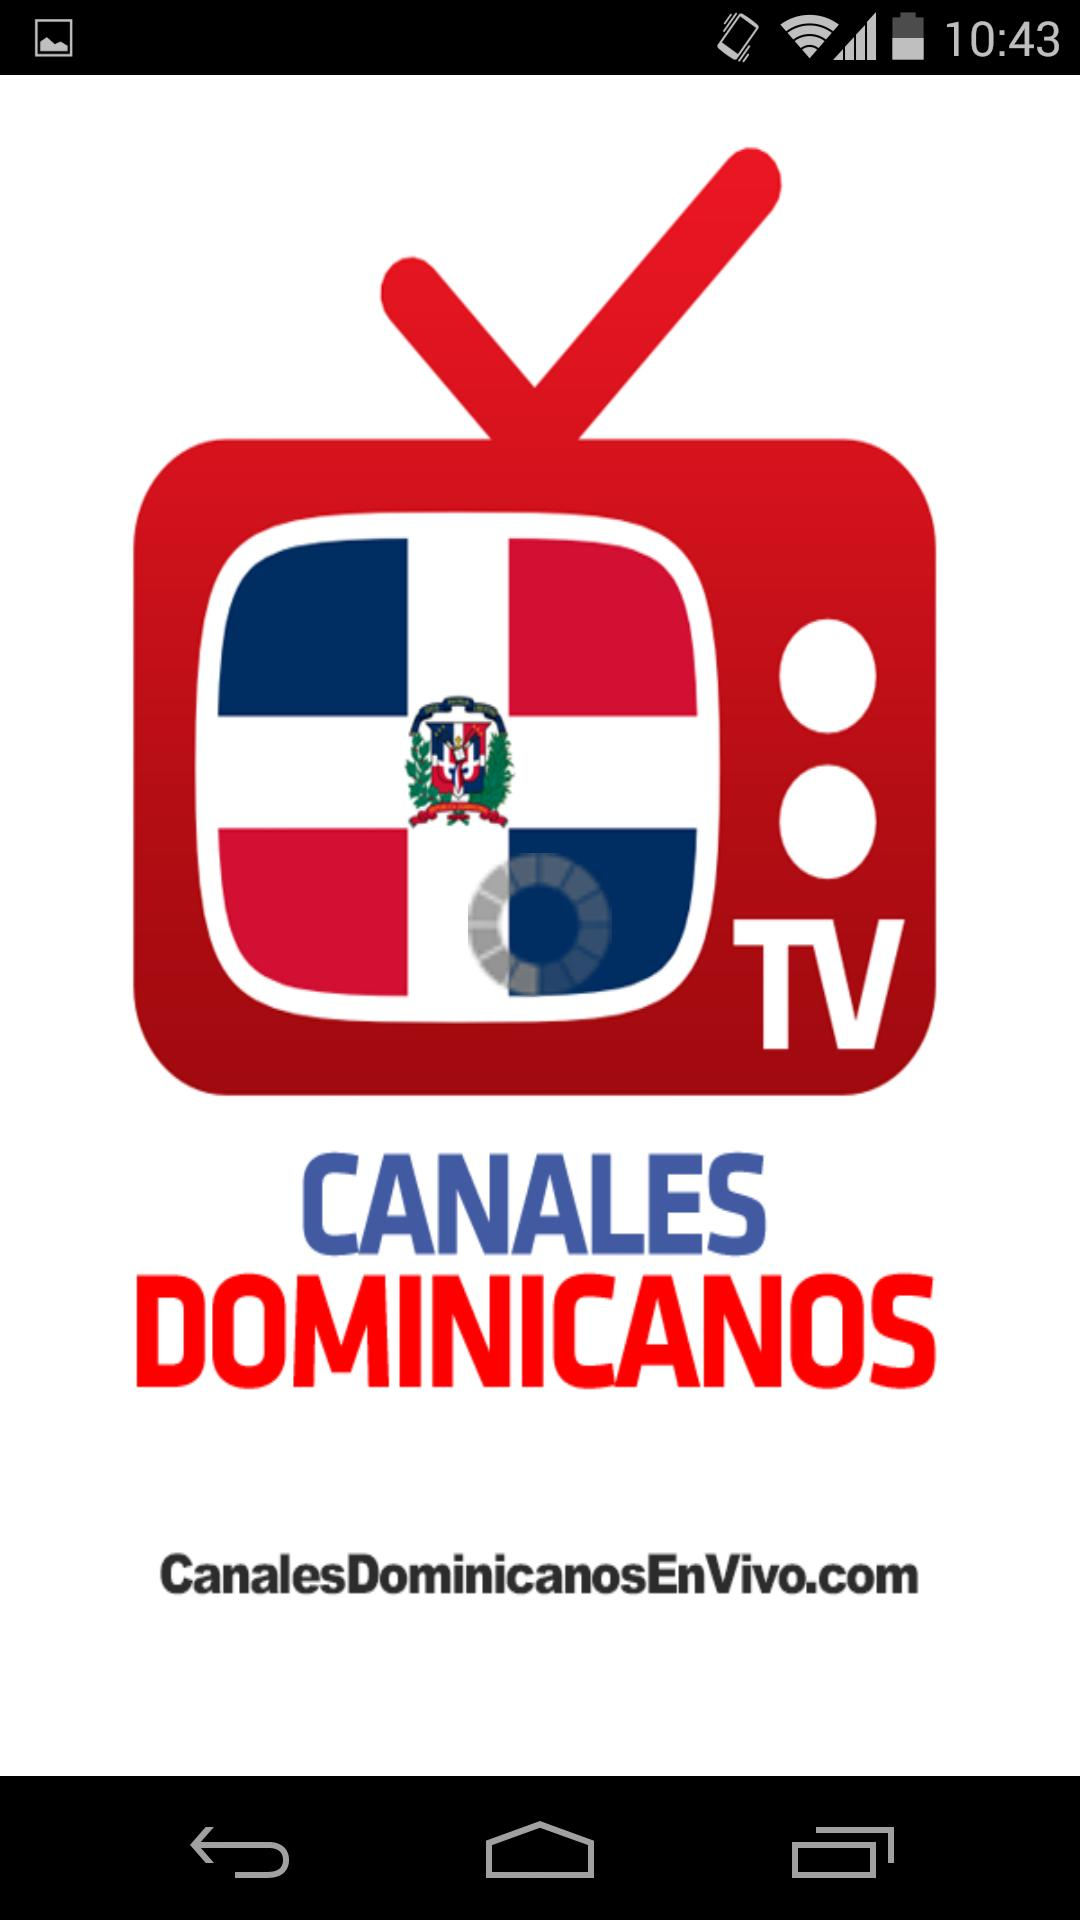 Canales Dominicanos for Android - APK Download